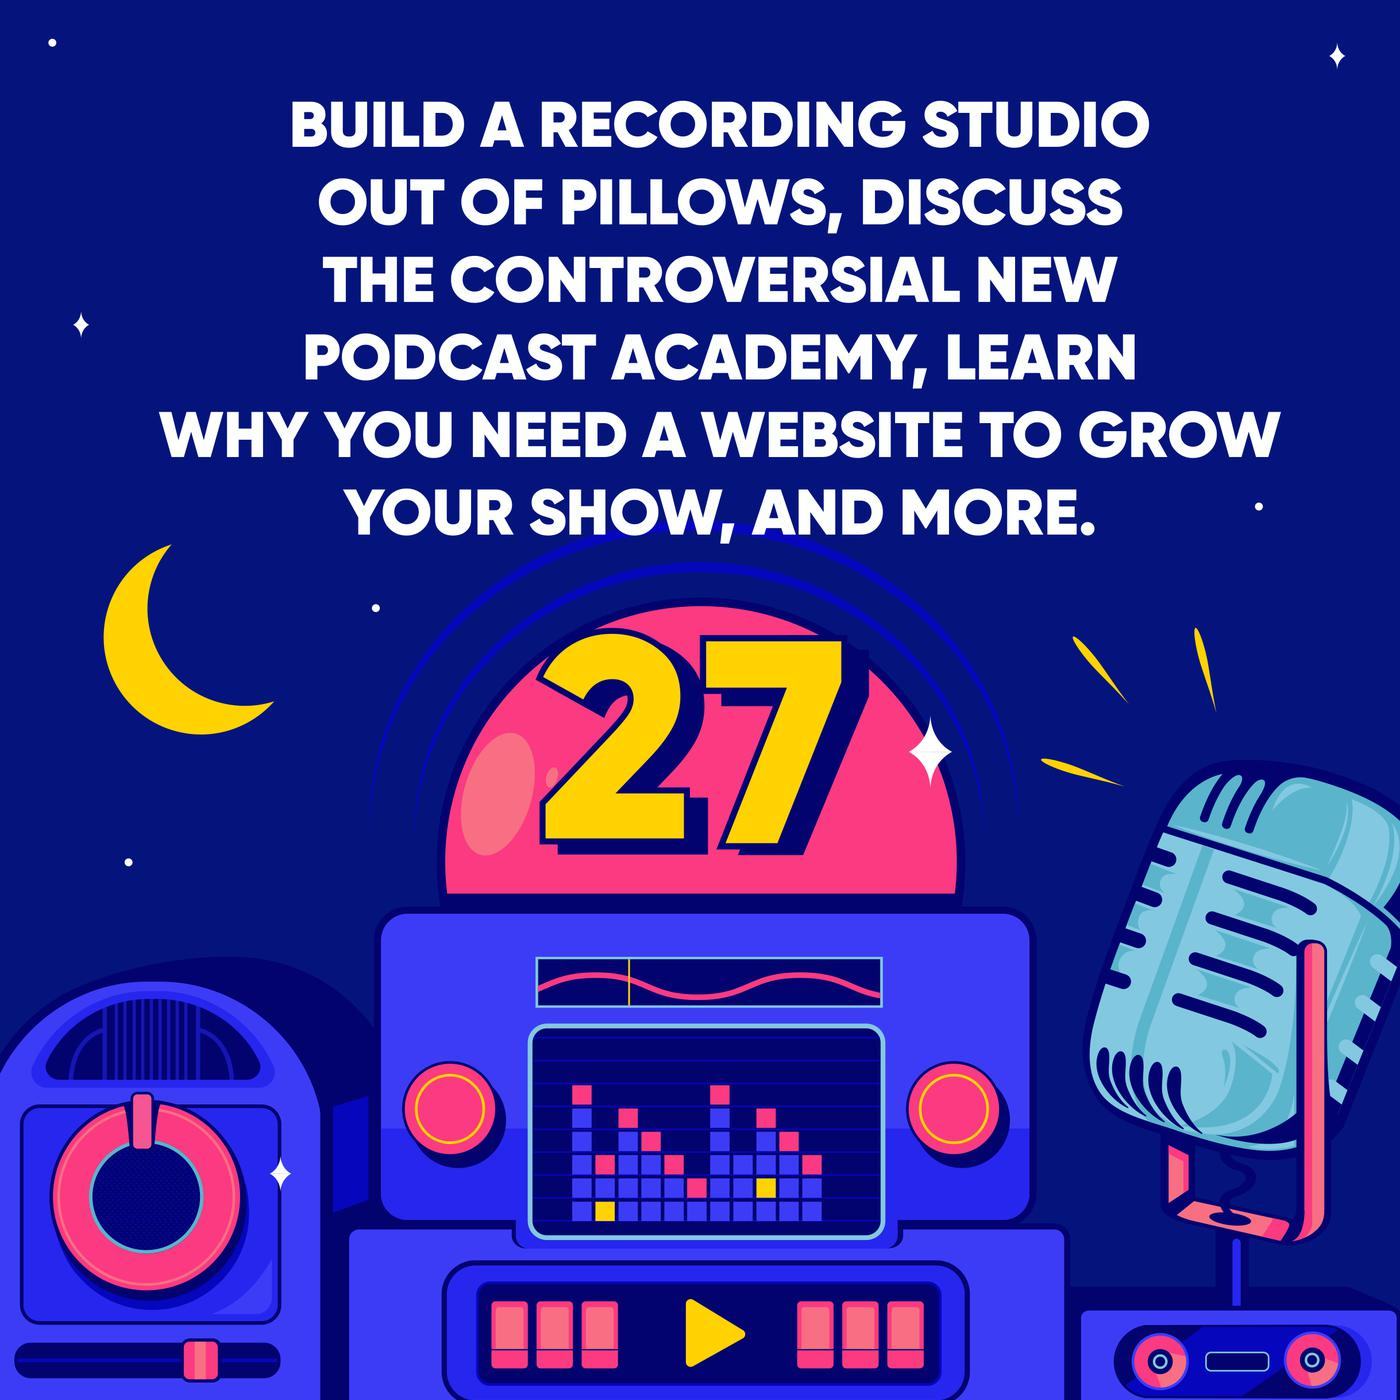 Build a Recording Studio out of Pillows, Discuss the Controversial new Podcast Academy, Learn why you need a Website to Grow your Show, and More.